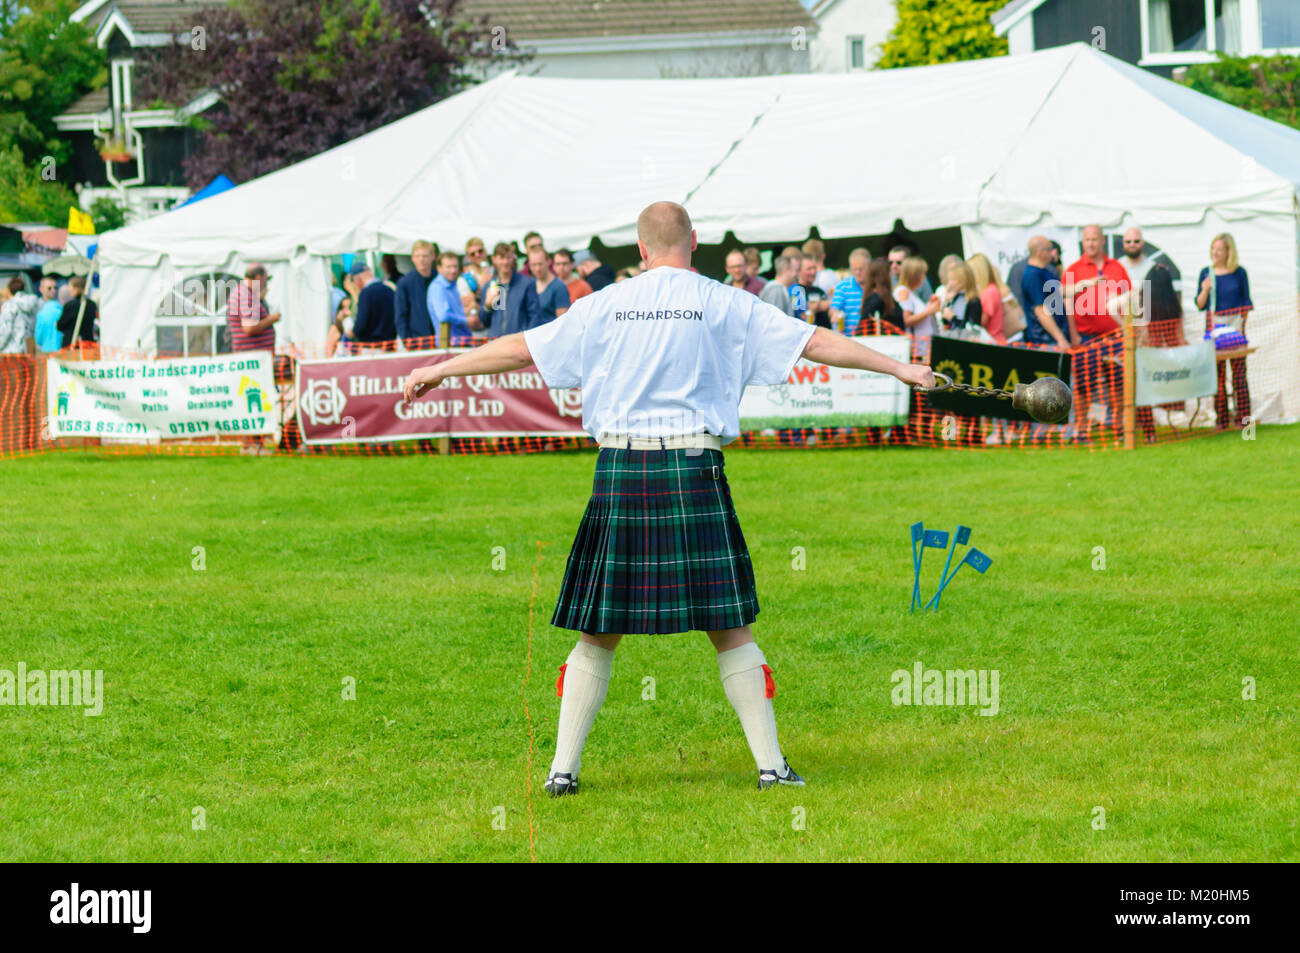 Male prepares to compete in the weight throw competition at the Dundonald Highland Games, Ayrshire, which celebrates - Stock Image